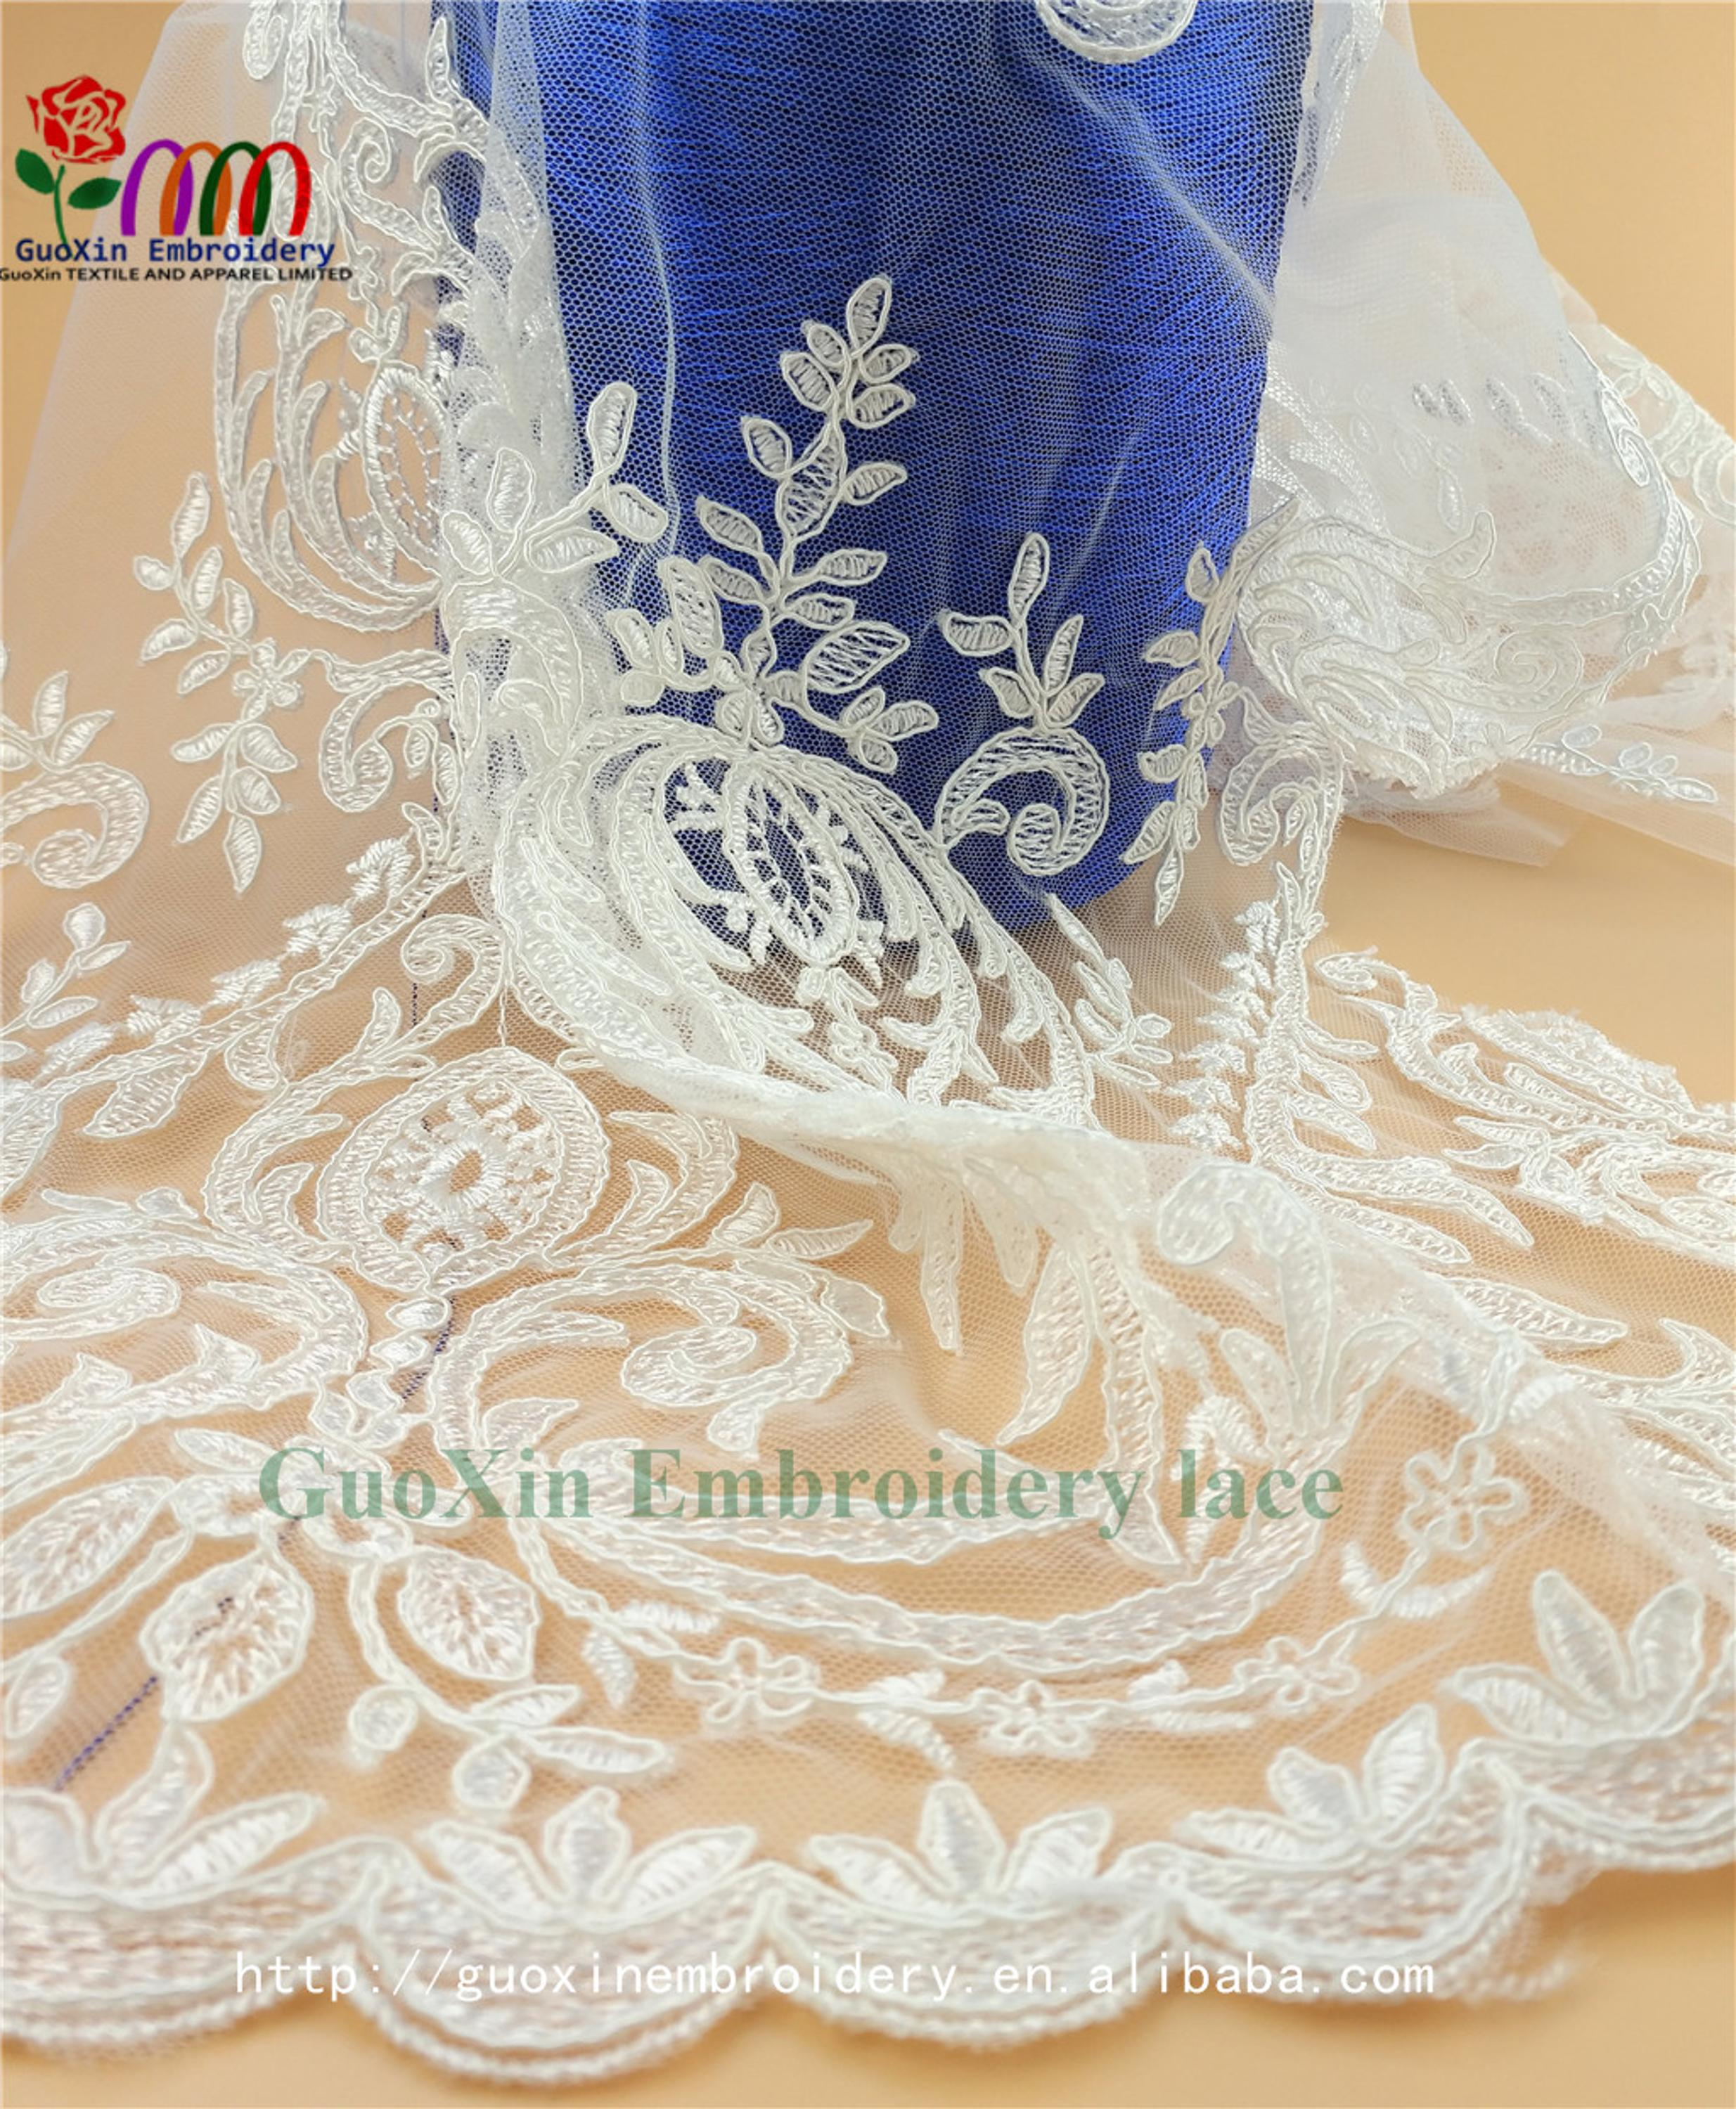 aliexpress pretty french lace embroidery lace fabric with cording (1).jpg